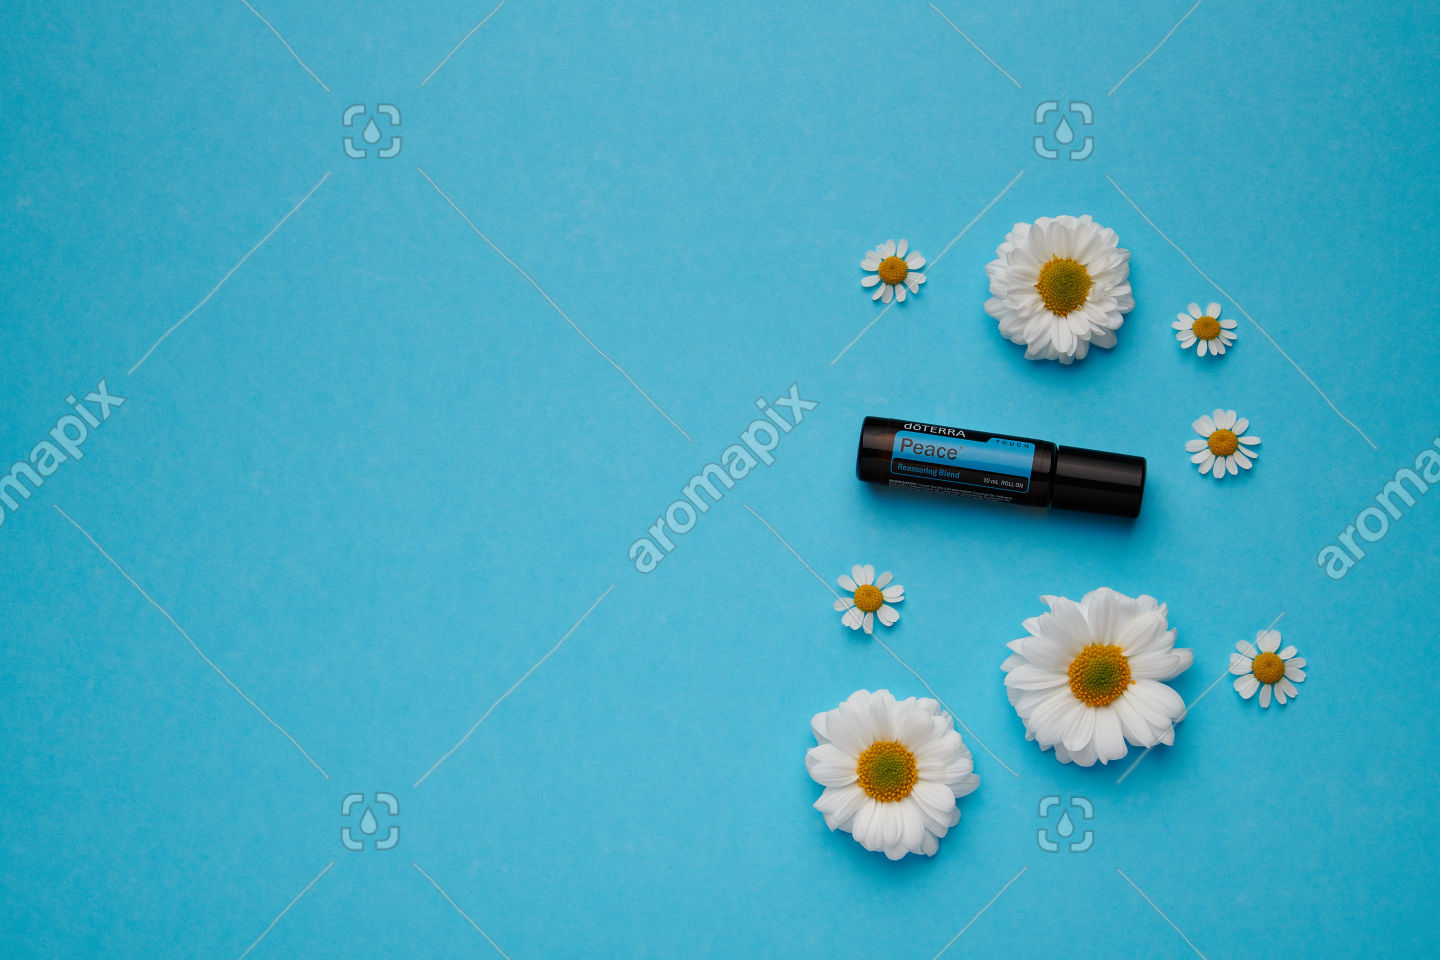 doTERRA Peace Touch with flowers on blue